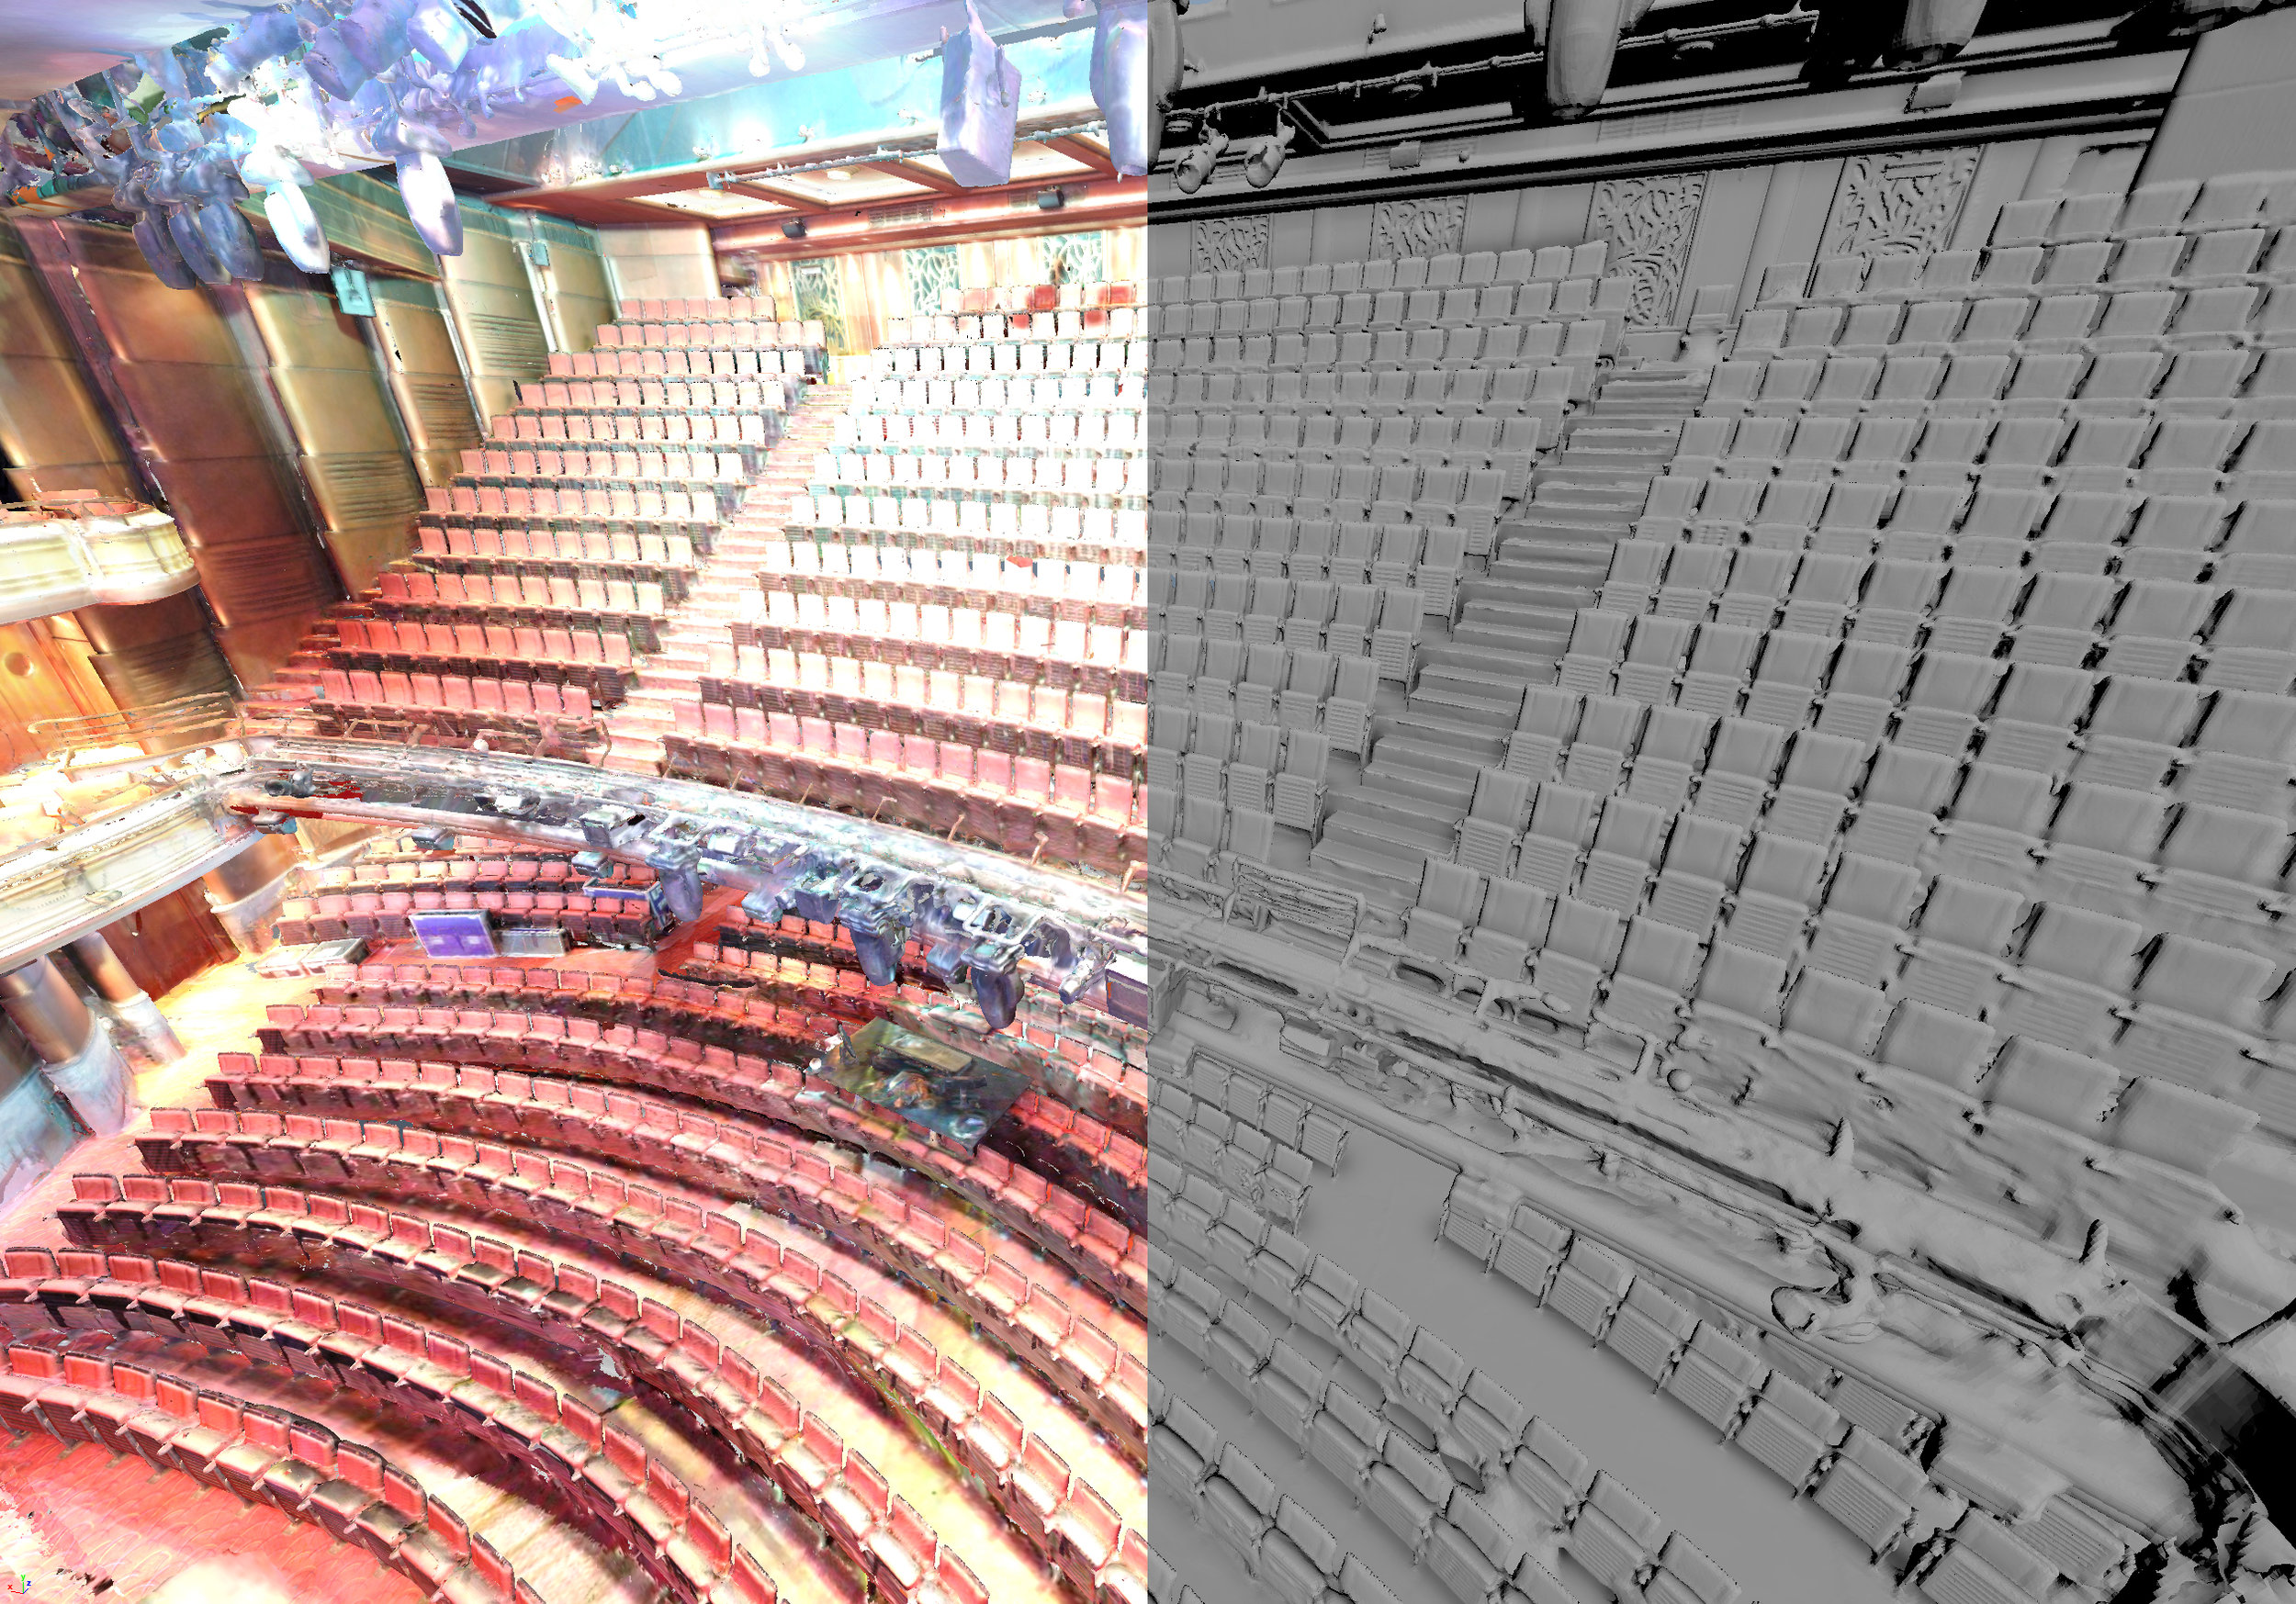 Prince of Wales Theatre Laser Scan